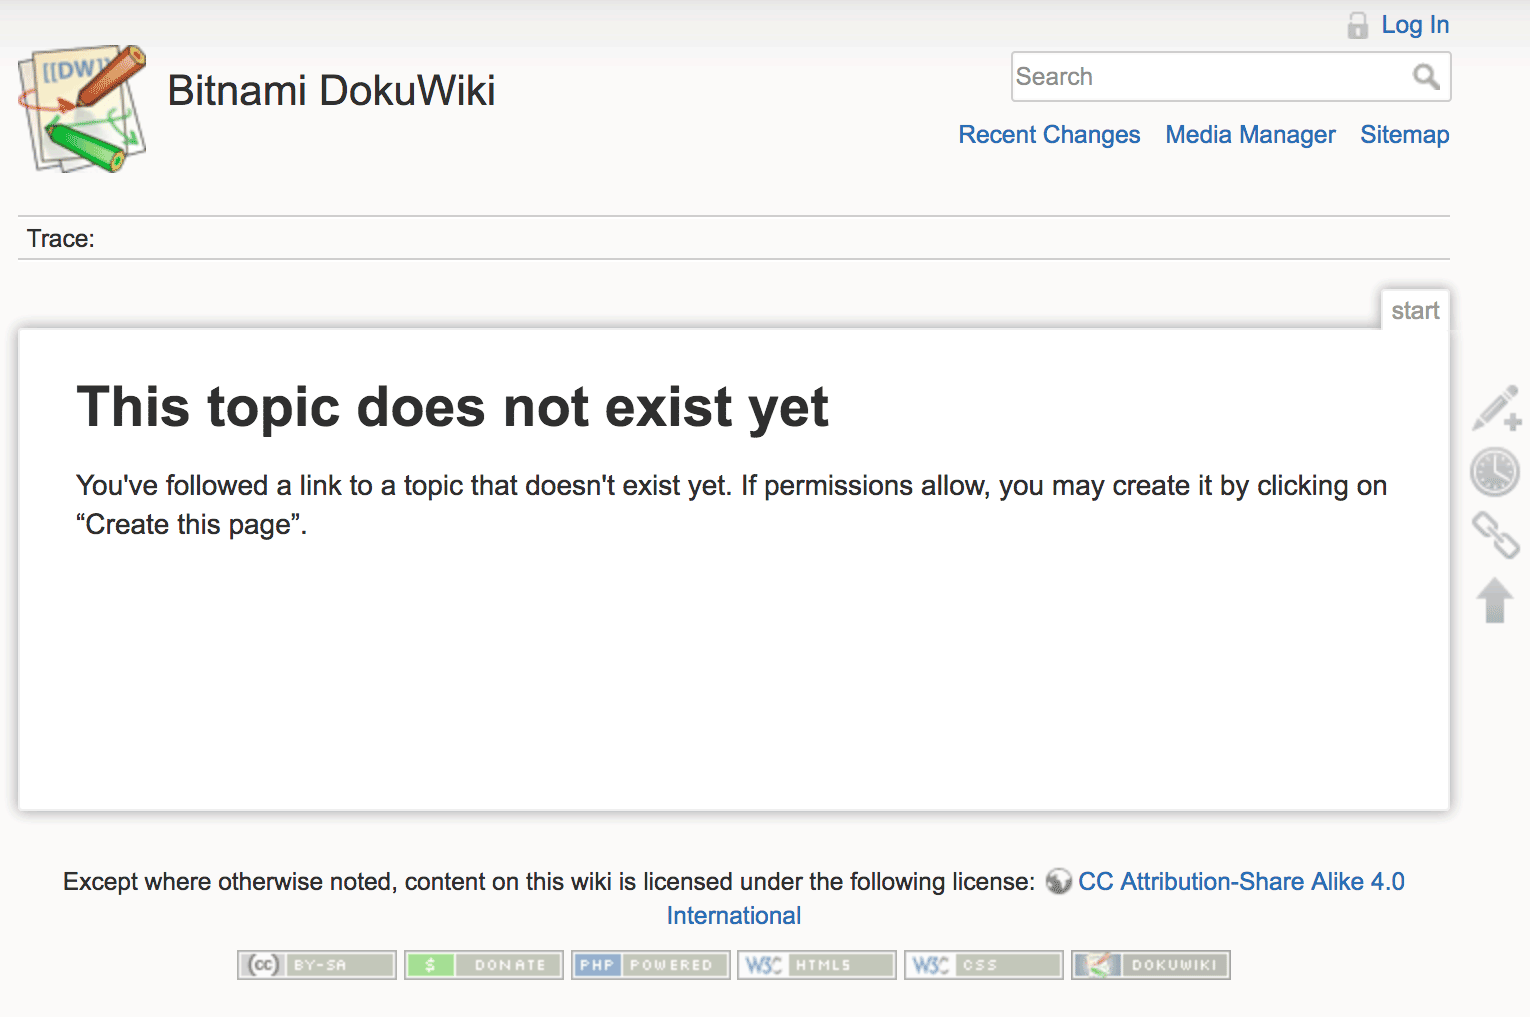 DokuWiki welcome page